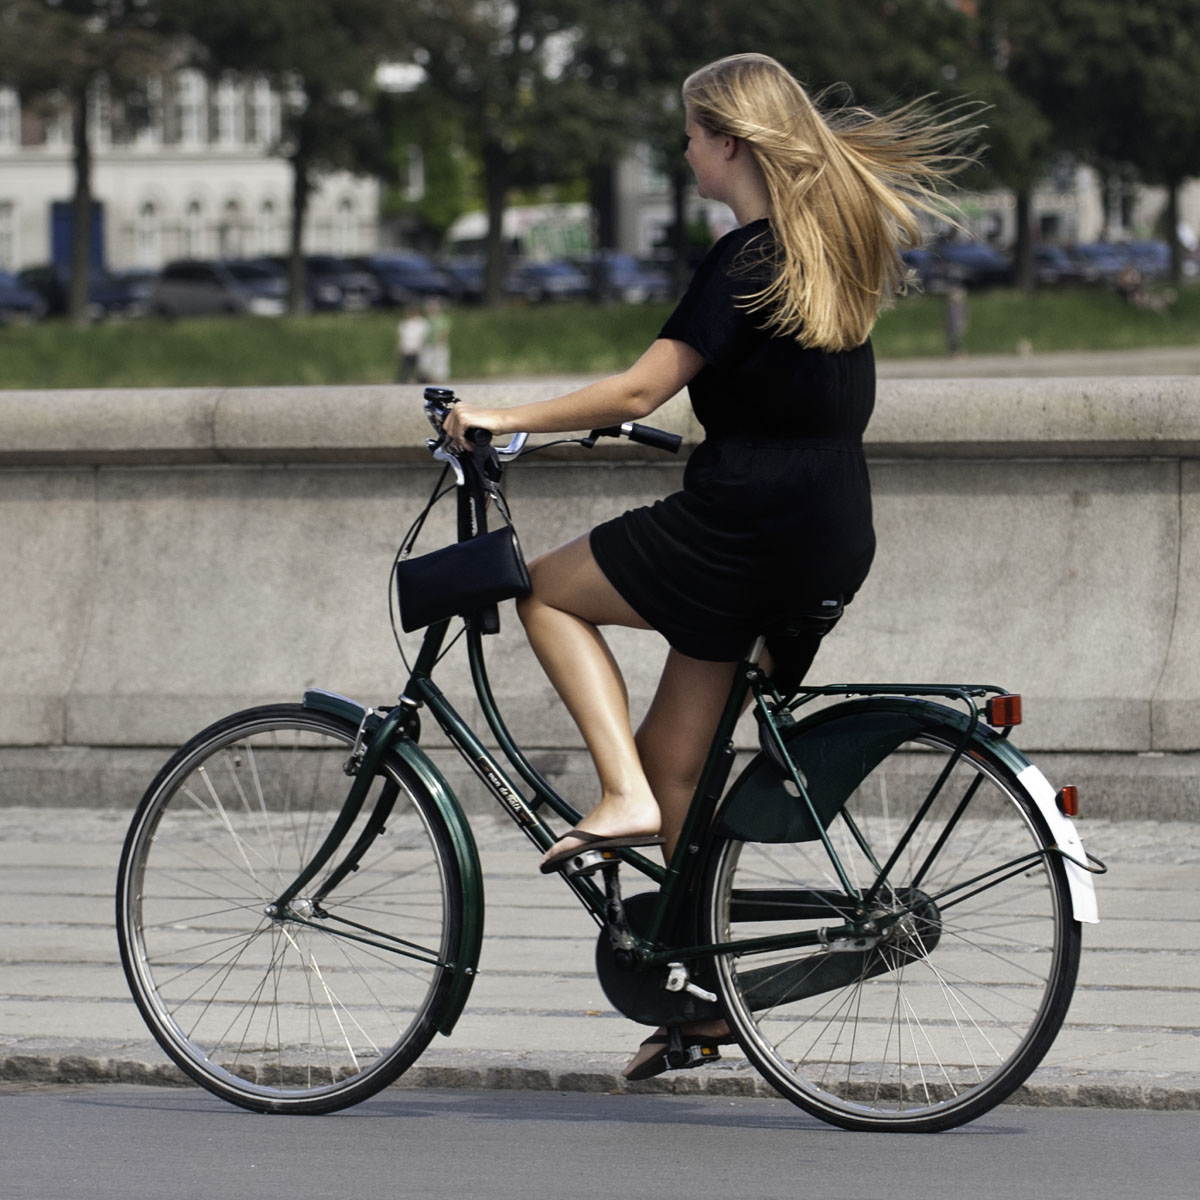 Tight for time? Bike to work. You'll be killing two birds with one stone.